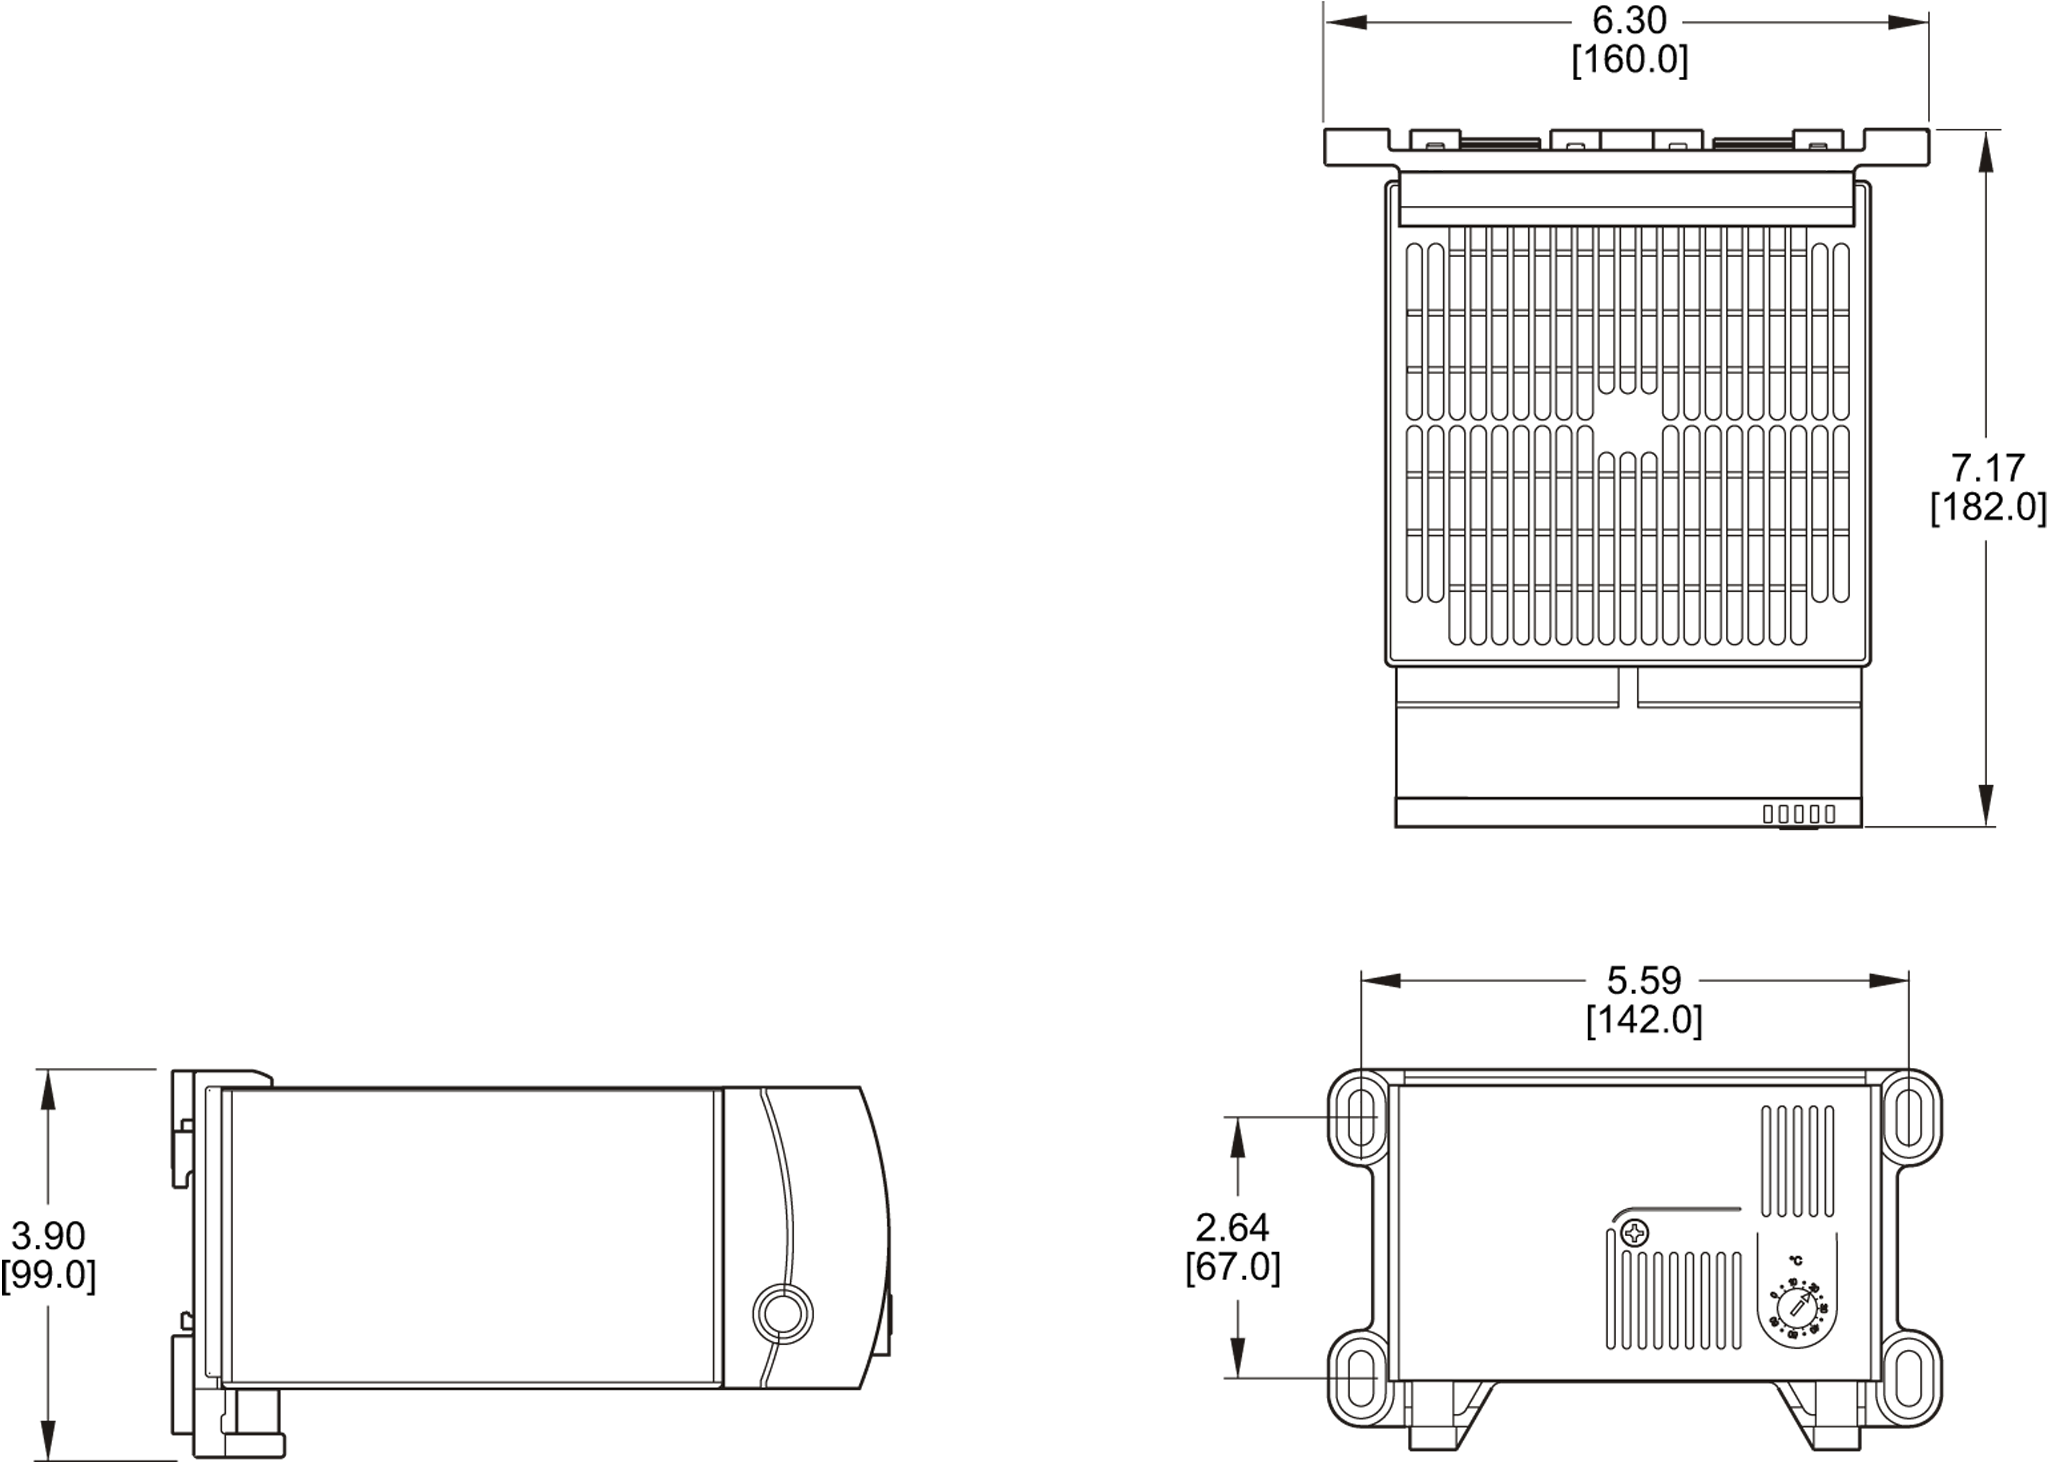 Panel-Mounted Heater General Arrangement Drawing